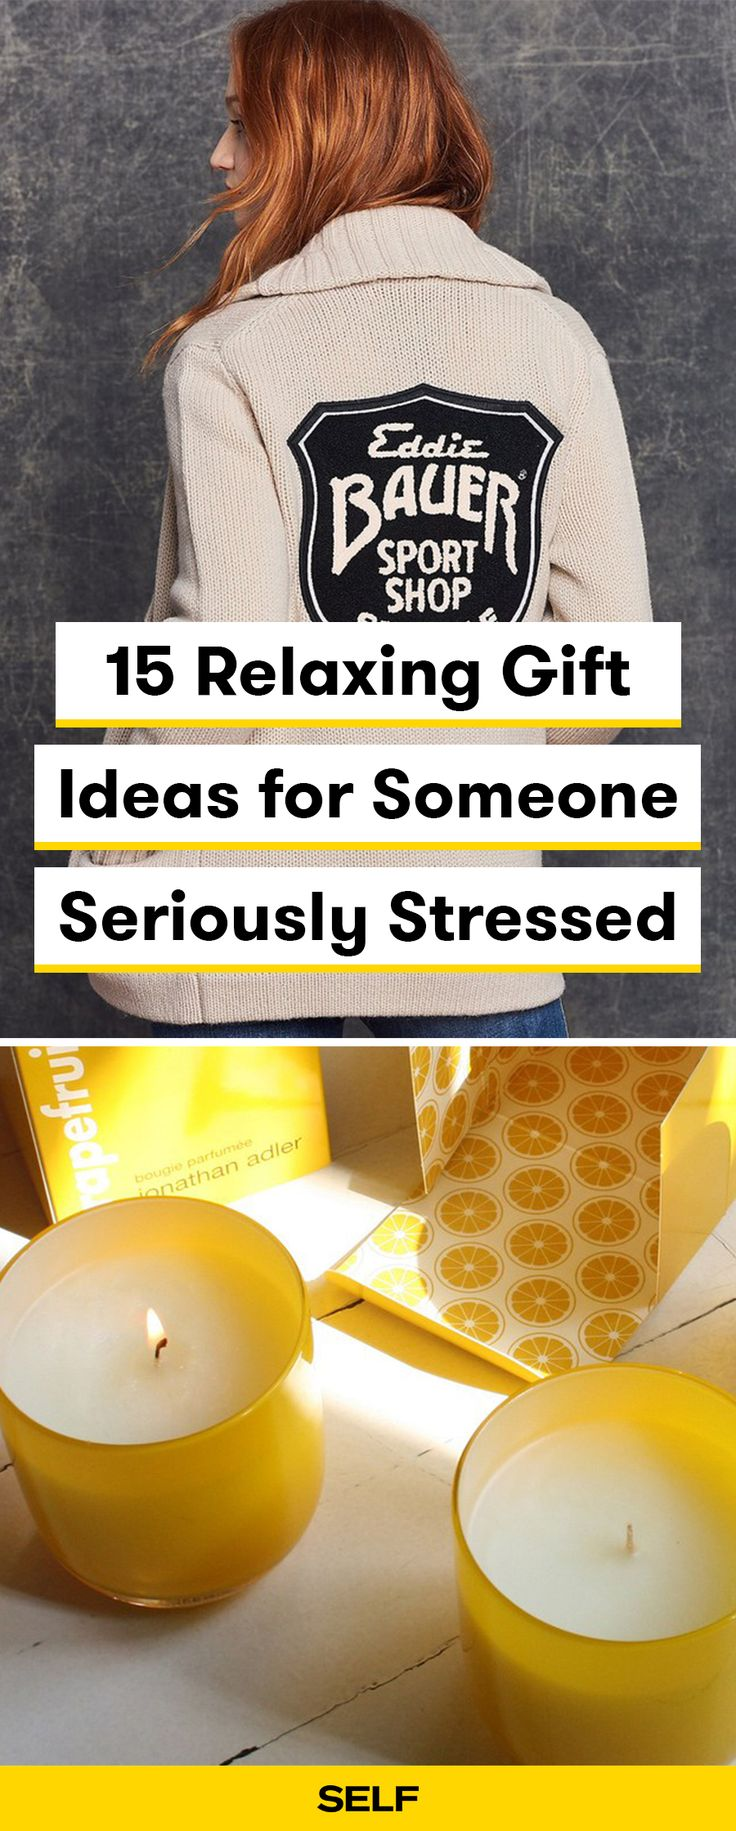 15 Relaxing Gift Ideas for Someone Who Is Really Freaking Stressed Out